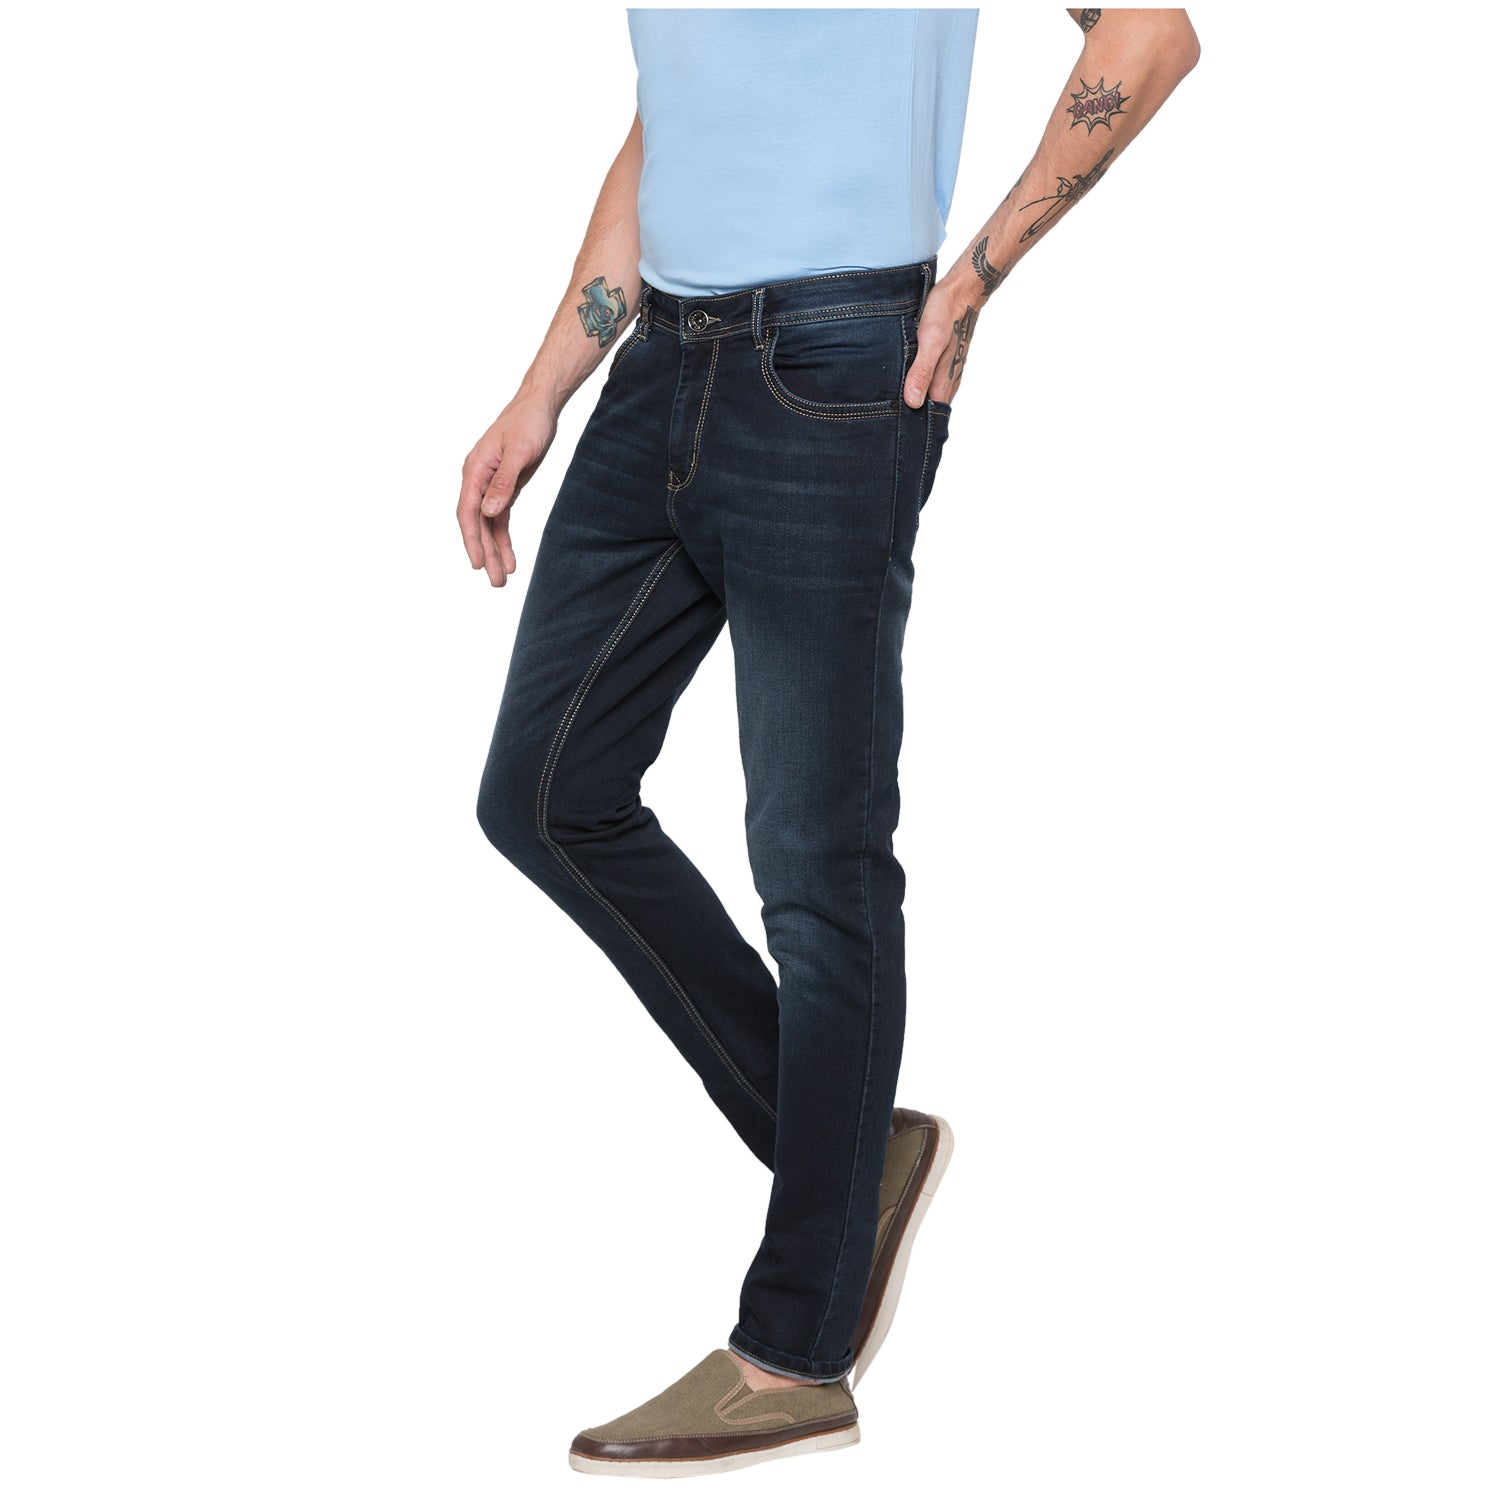 Globus Blue Black Clean Look Jeans-2